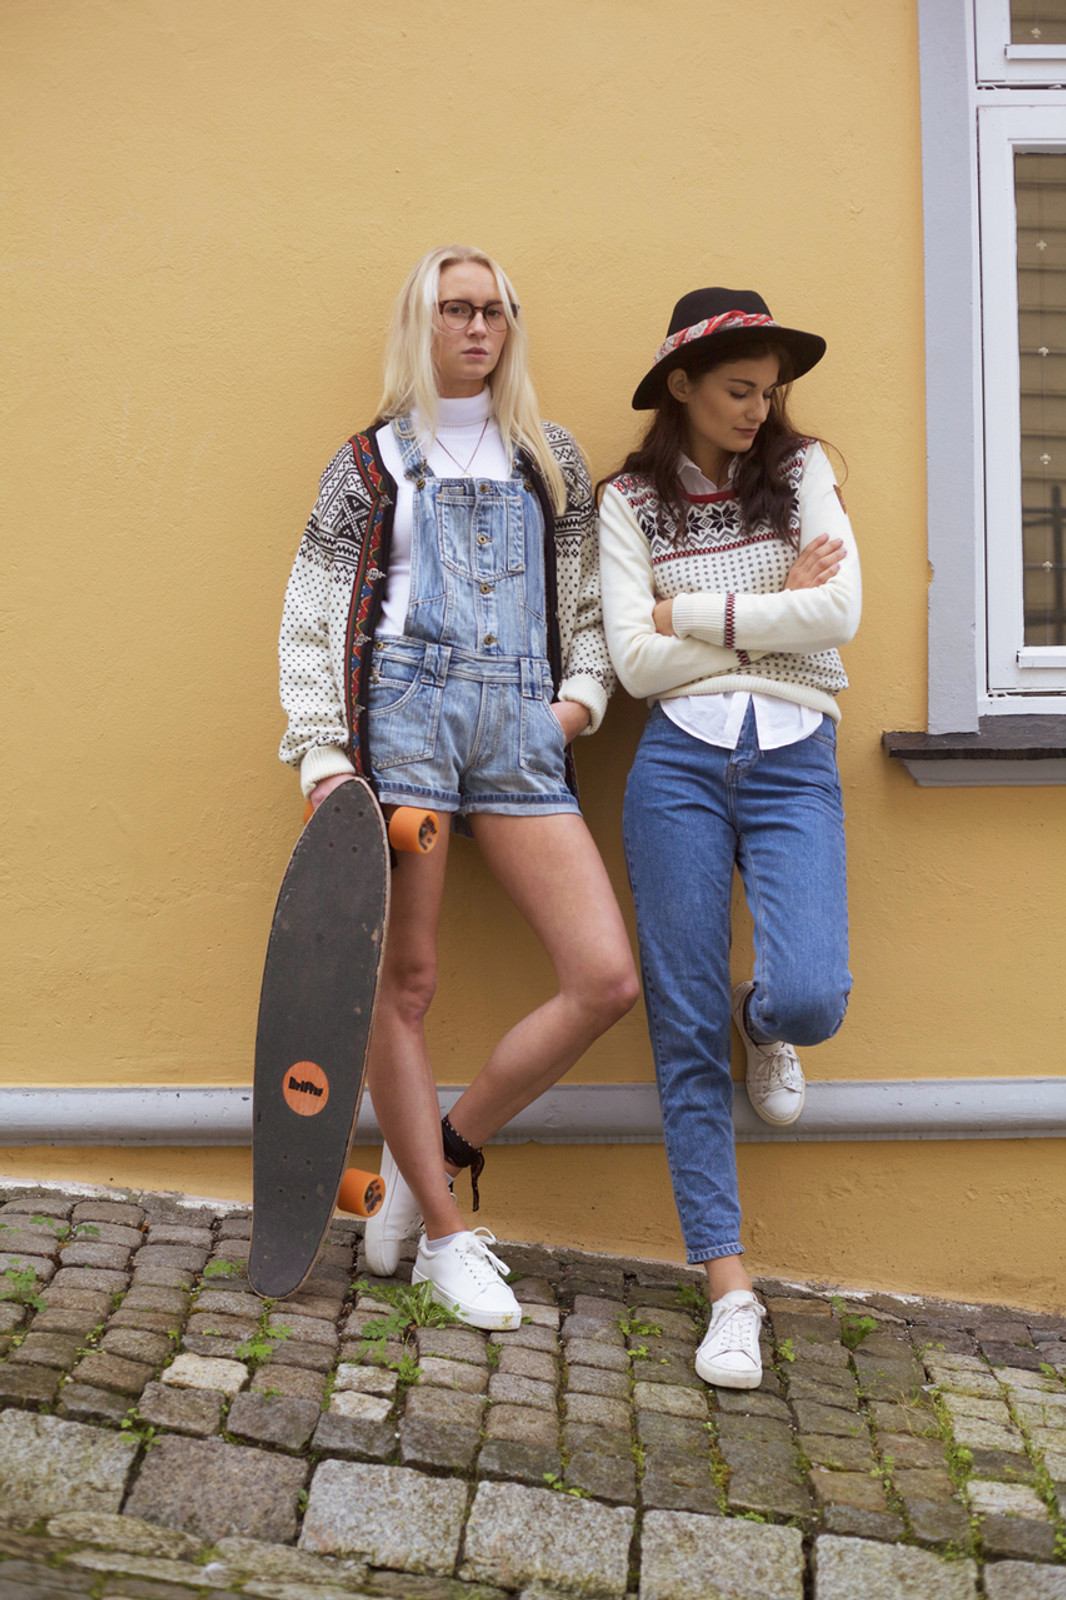 Woman with skateboard wearing Dale of Norway new unisex Setesdal cardigan in Off White/Black, 83291-A, standing against wall with woman wearing Dale of Norway Garmisch ladies sweater in Off White/Navy/Raspberry, 92601-A.